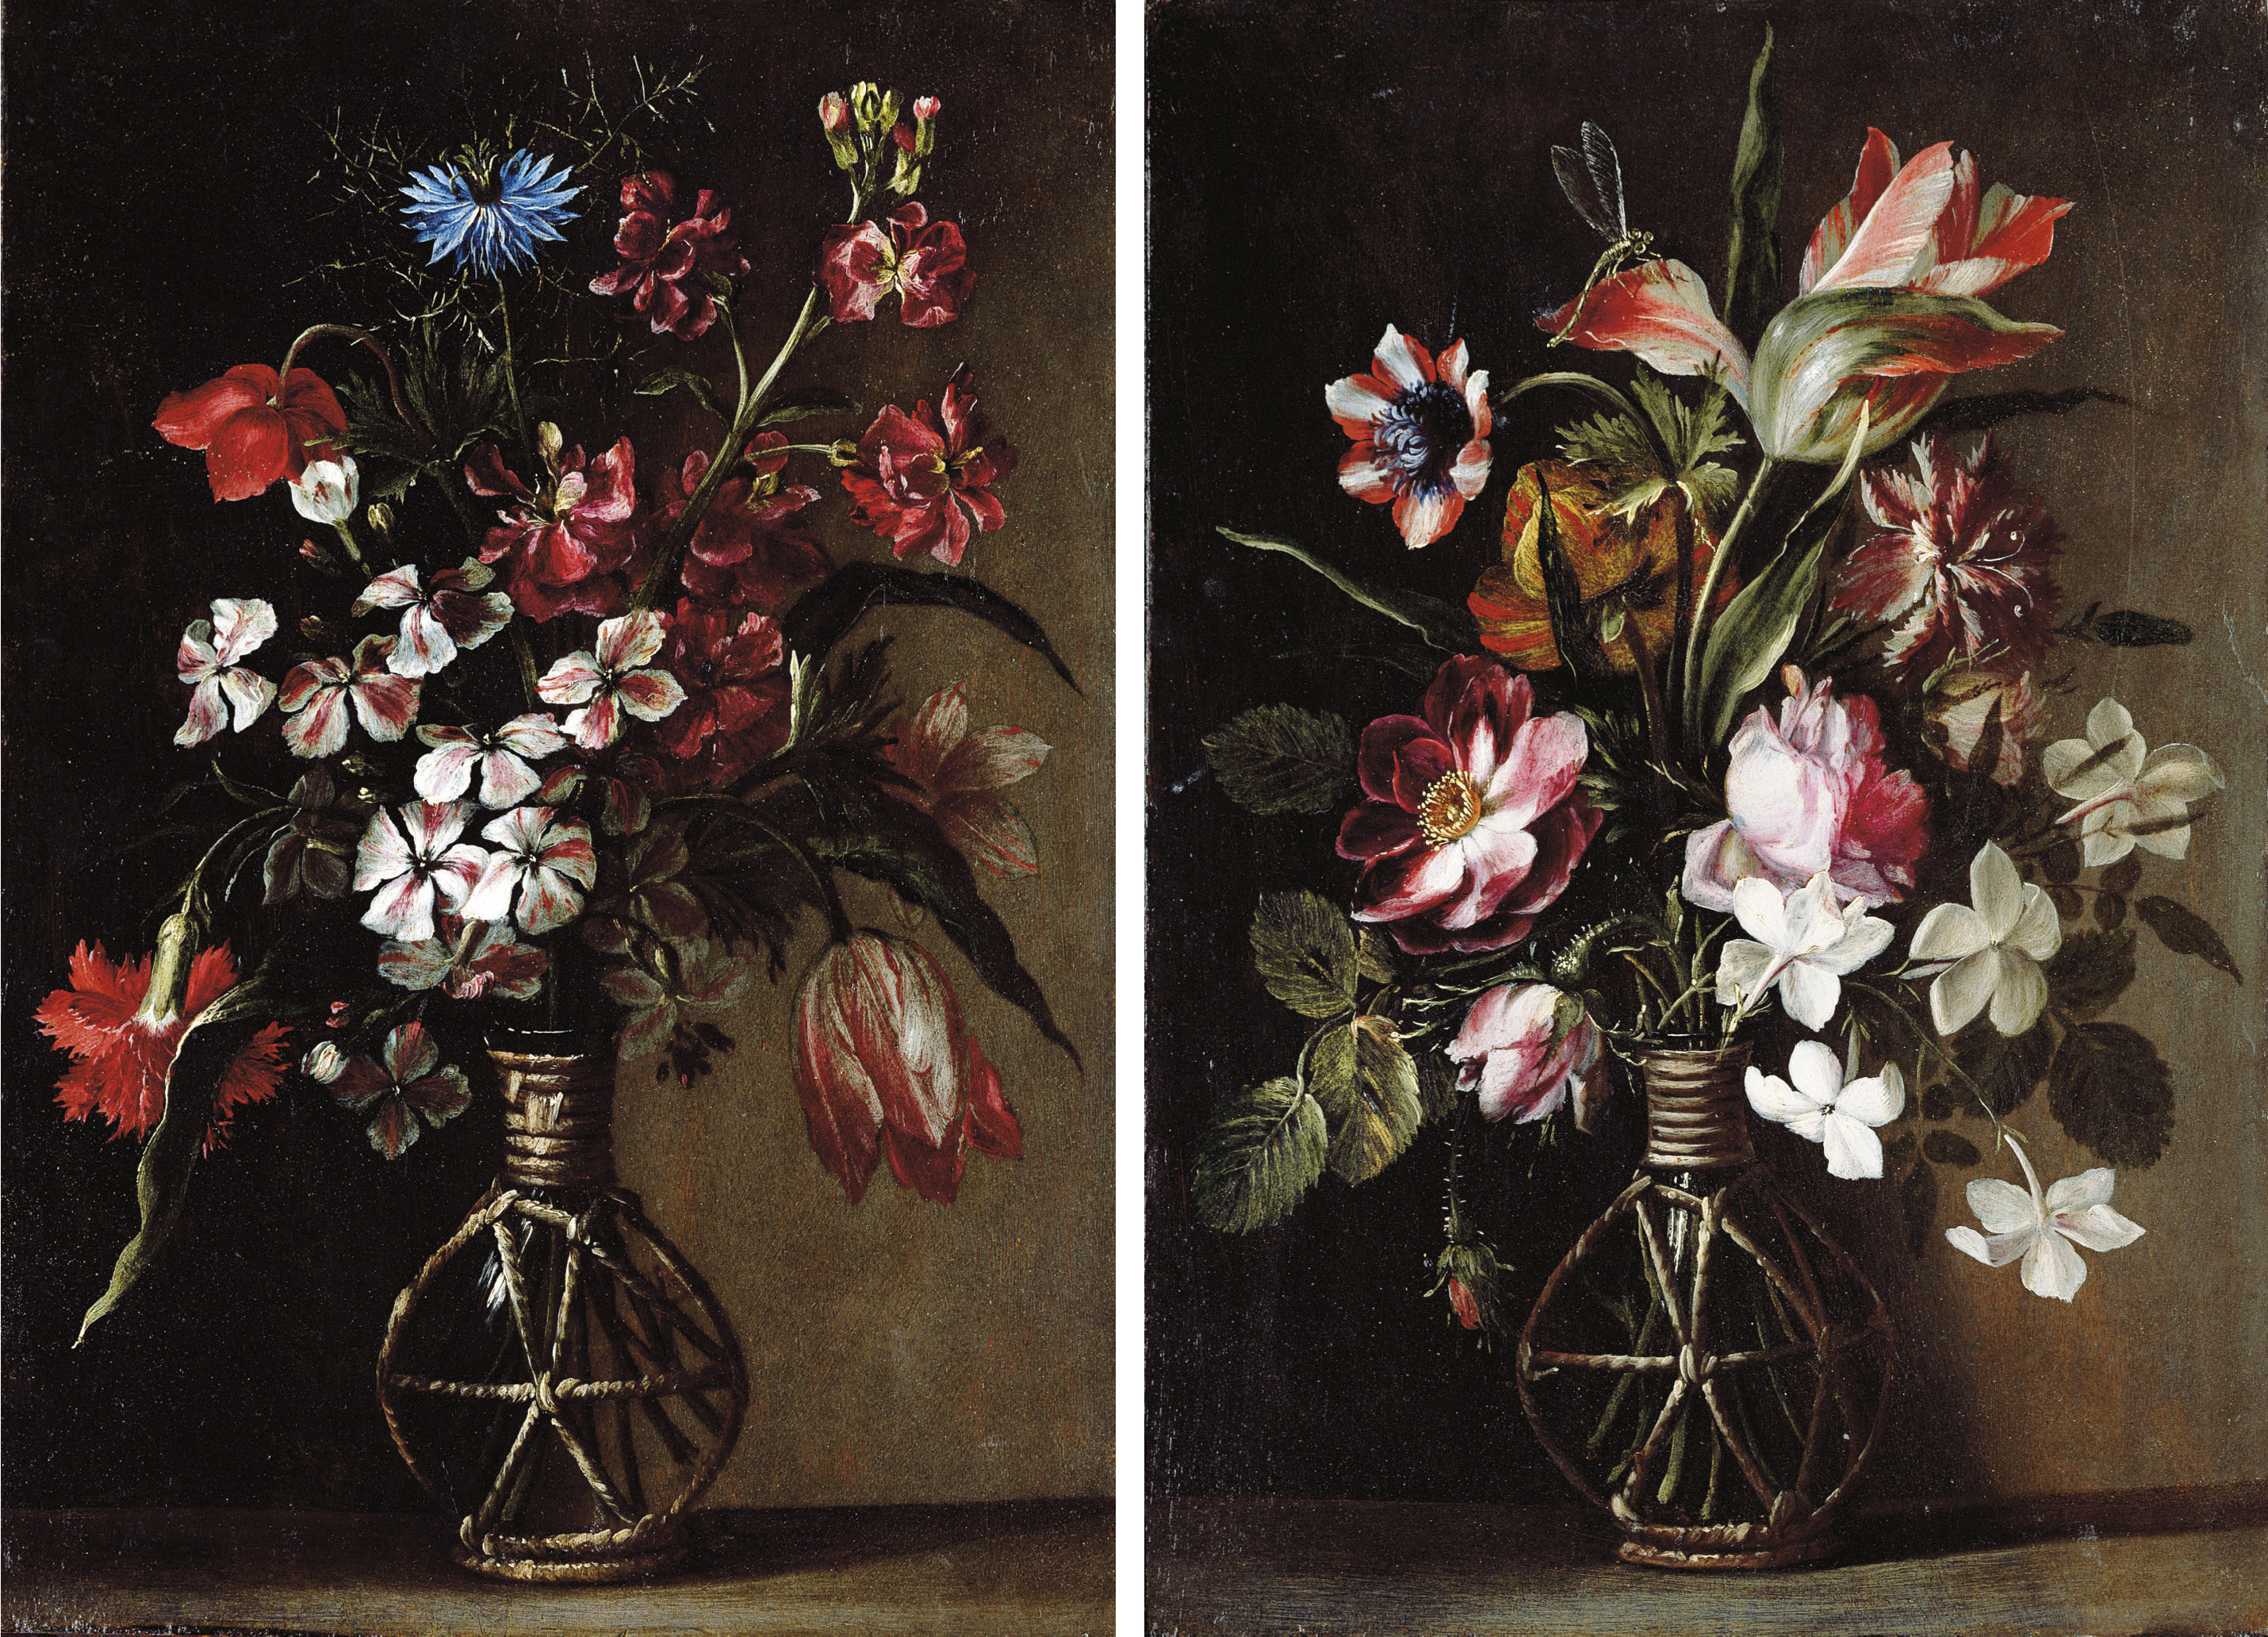 A cornflower, a tulip, a carnation and other flowers in a glass vase on a stone ledge; and A tulip, roses, jasmine and other flowers in a glass vase on a stone ledge, with a dragonfly